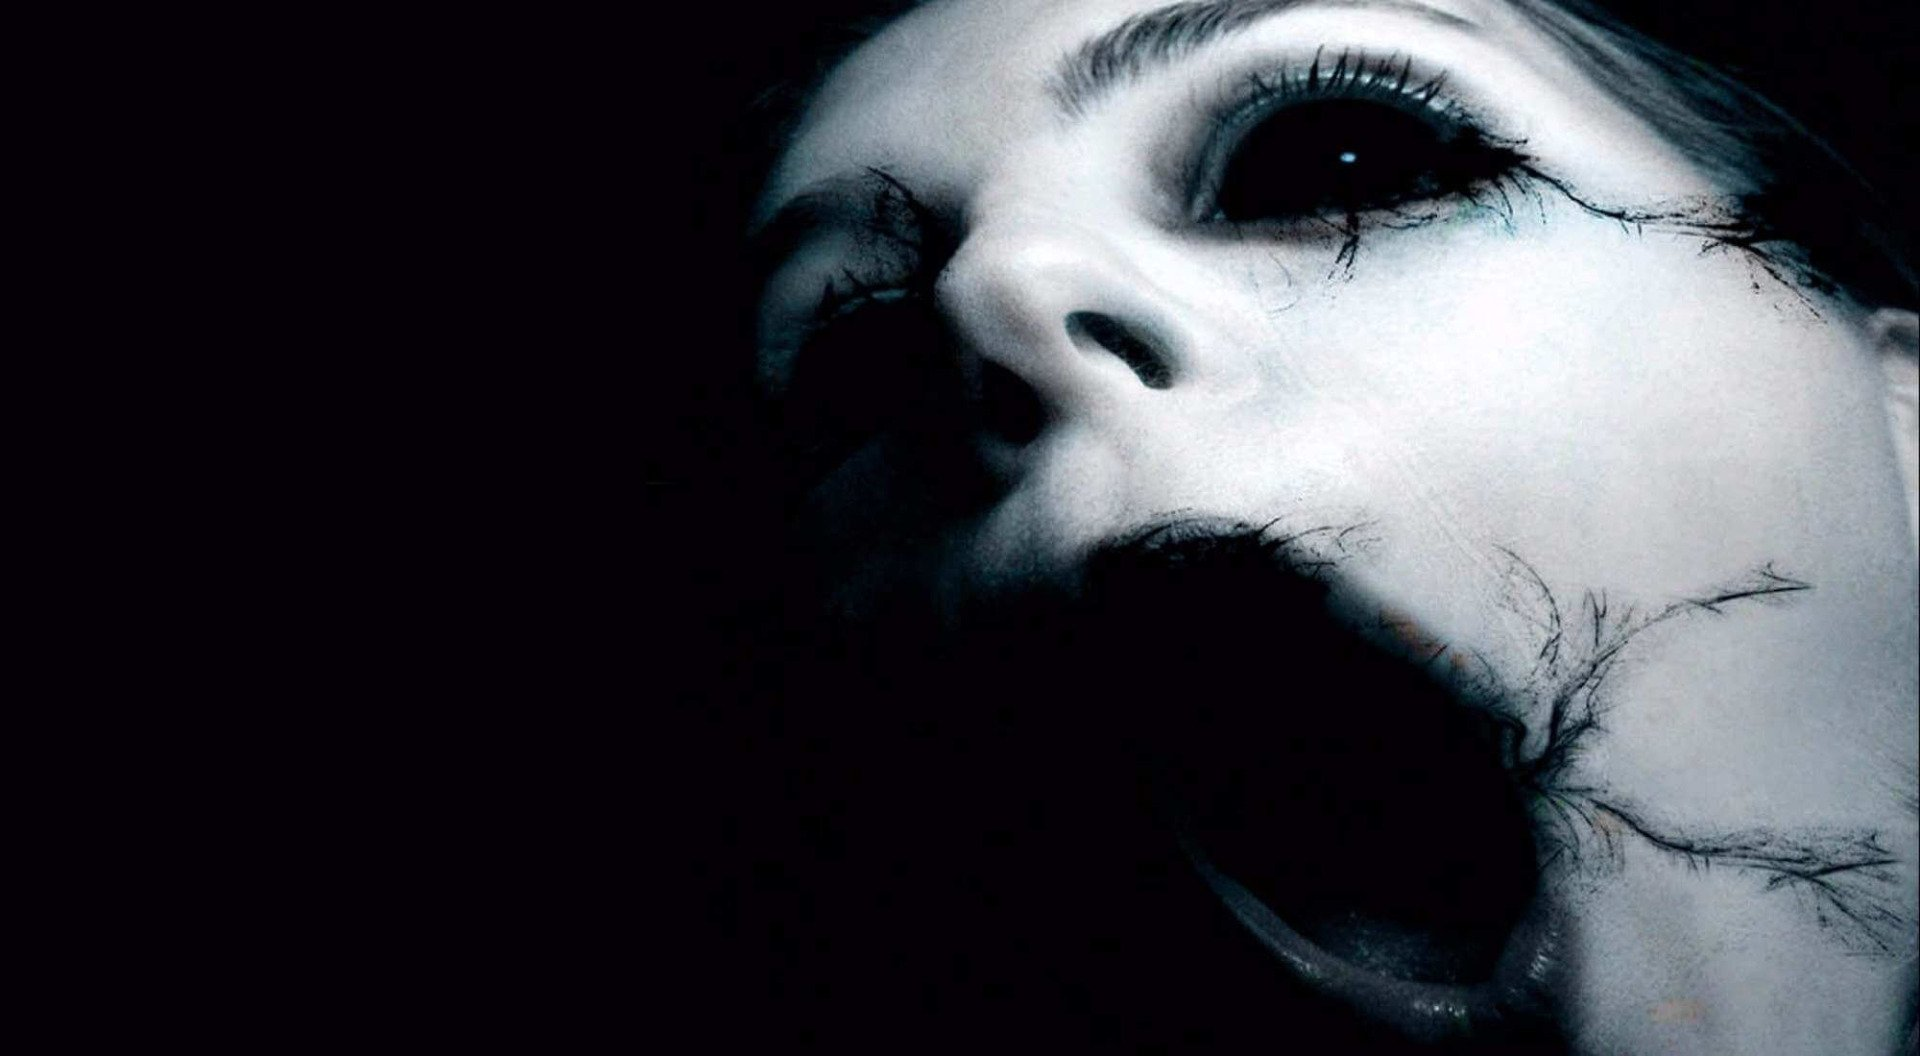 Black and white scary movies, good adult sites